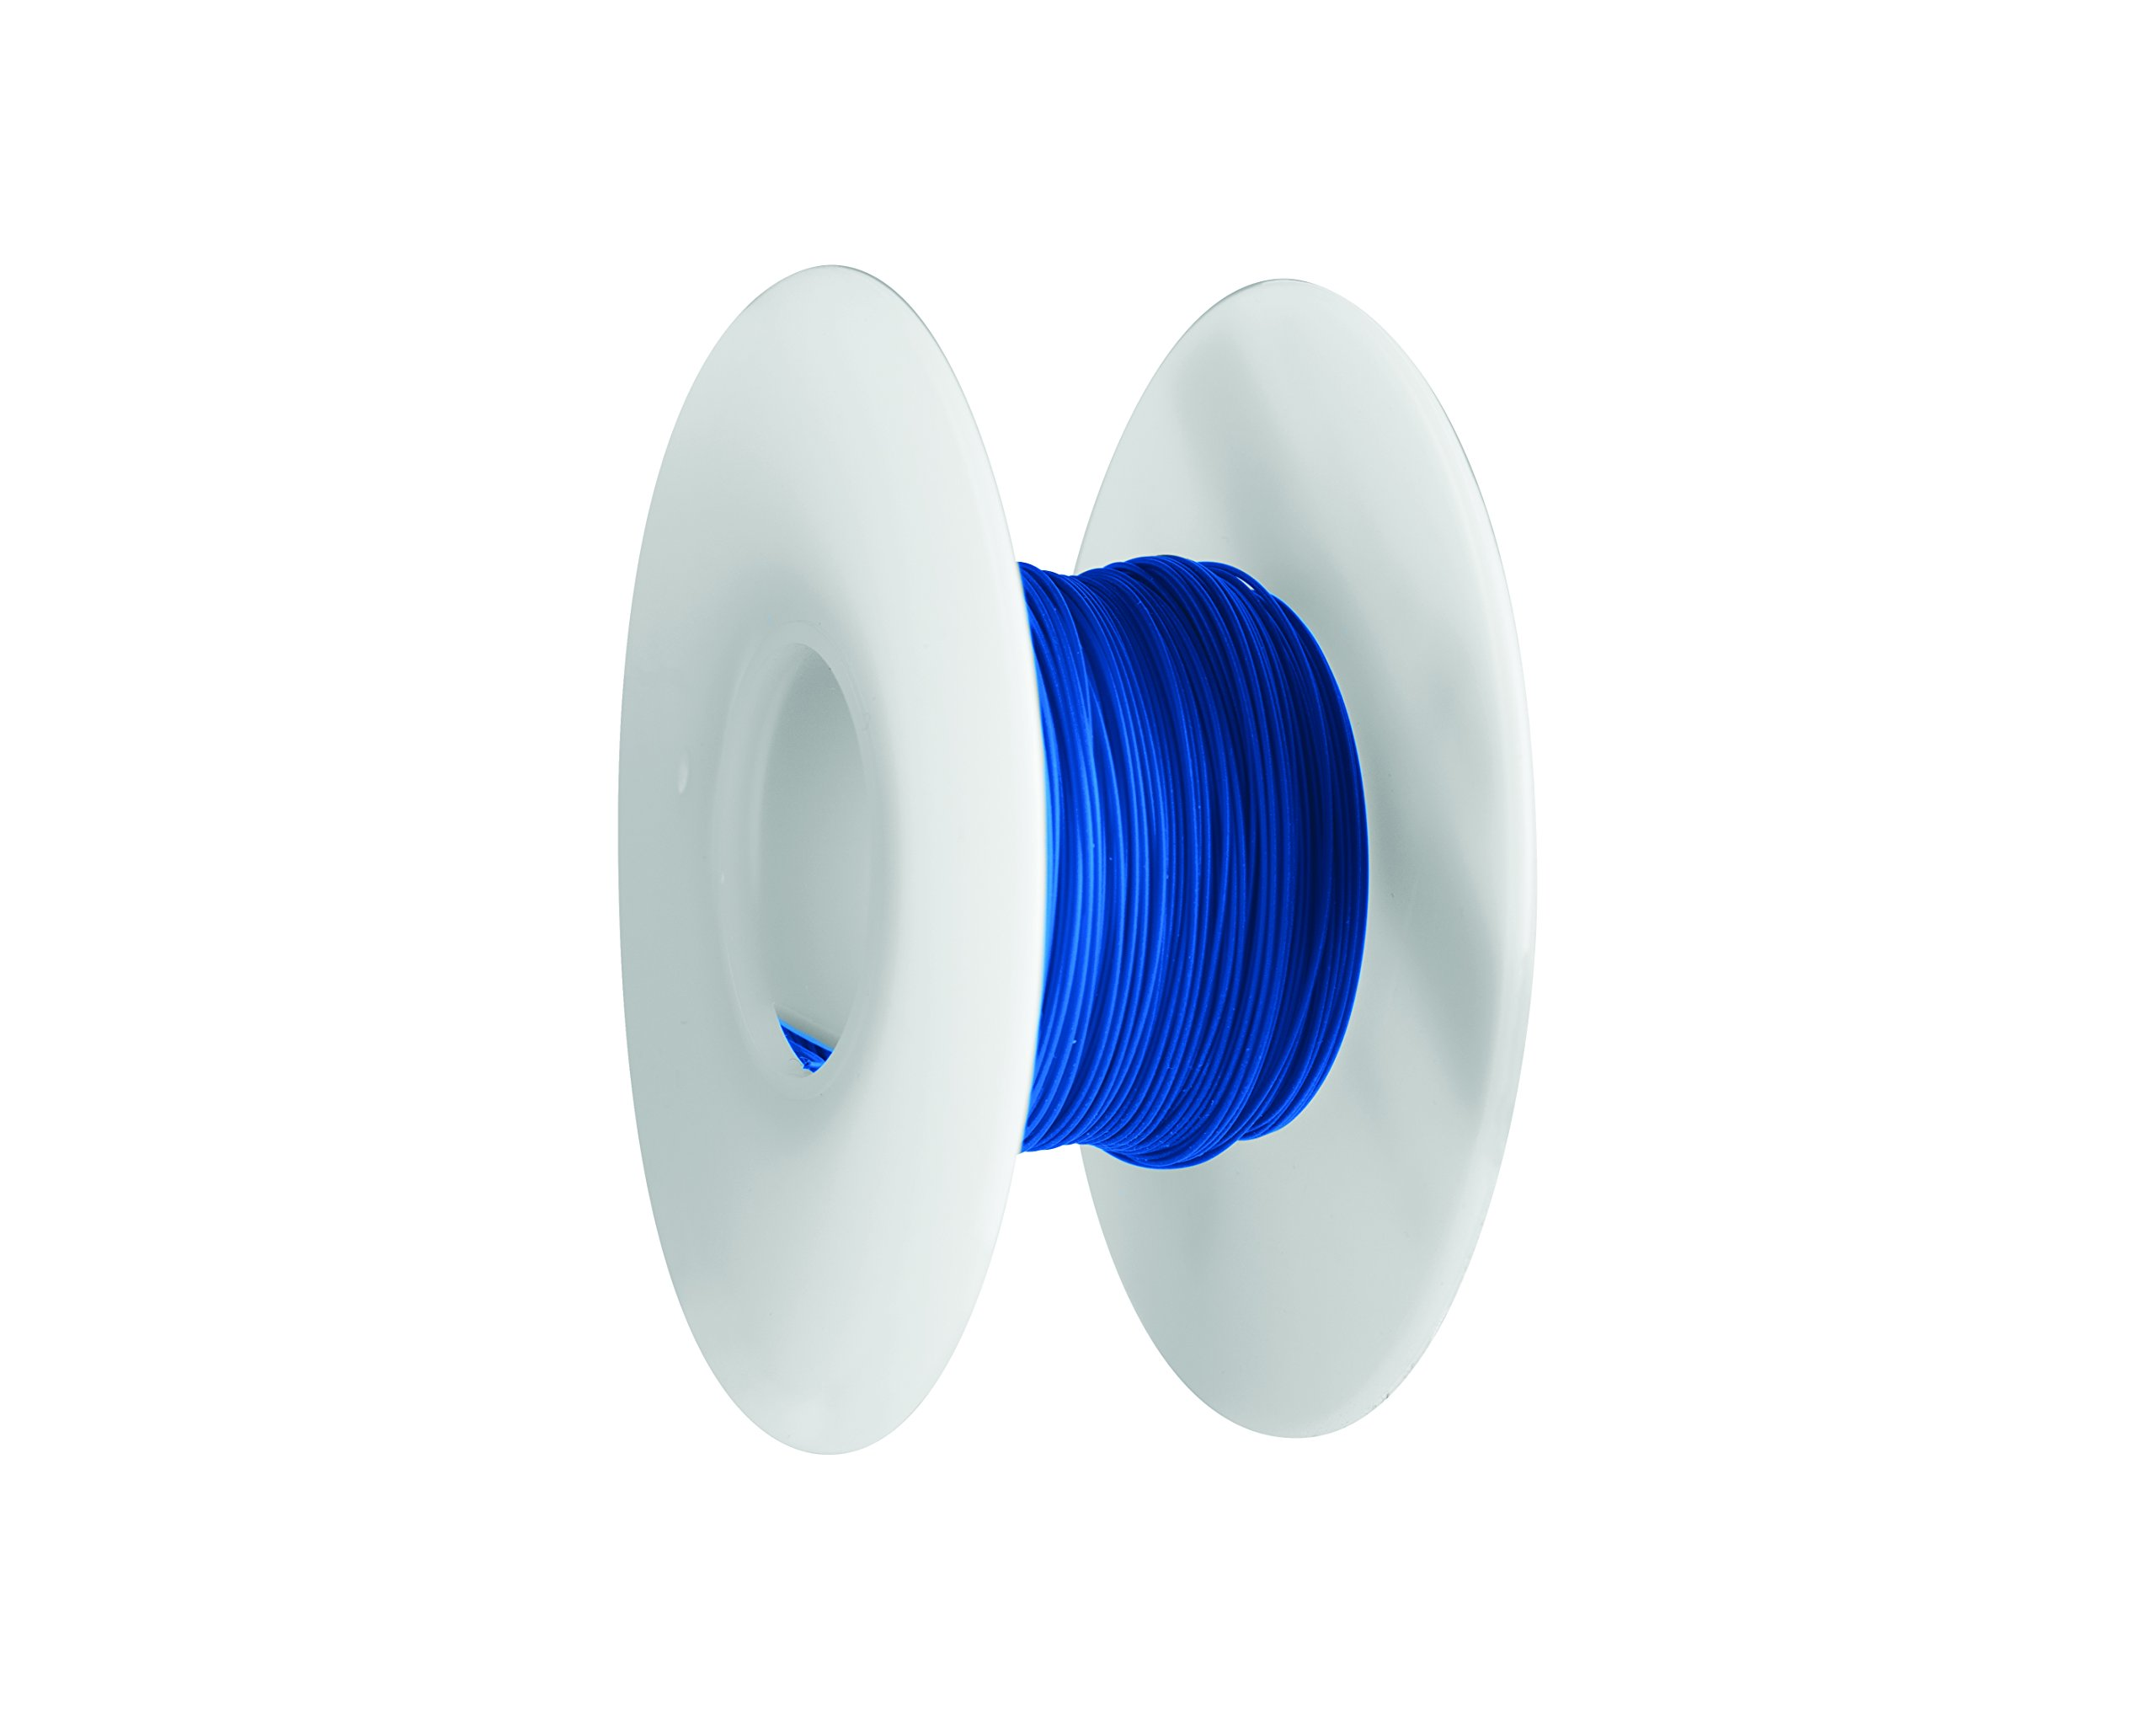 Jonard R26B-0100 Kynar Insulated Silver Plated Copper Wire, 26 AWG Wire Size, 0.027'' Insulation Diameter, 100' Length, Blue